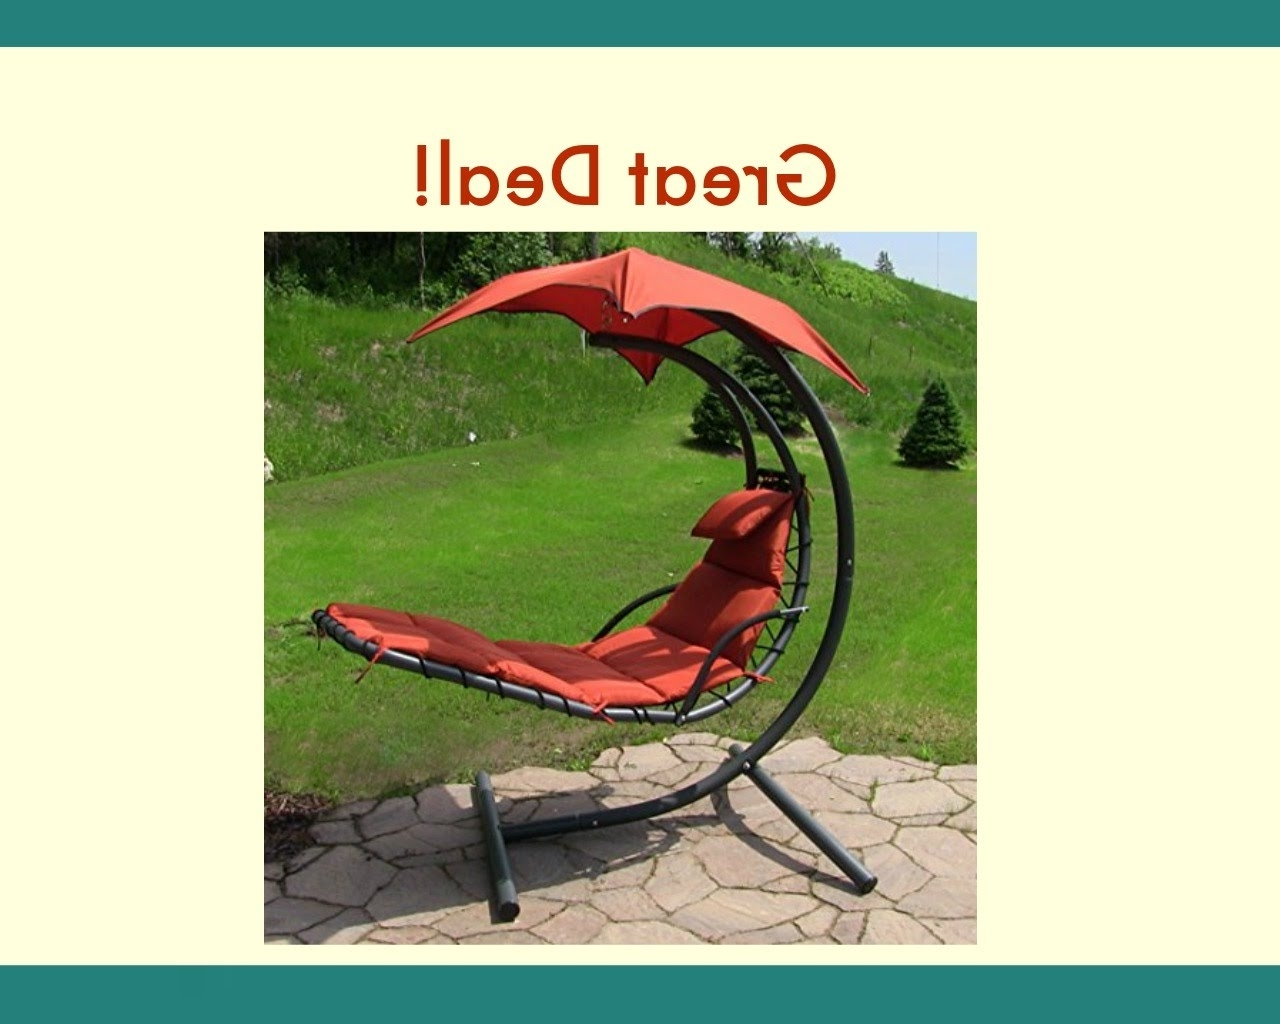 Chaise Lounge Swing Chairs Pertaining To Preferred Sunnydaze Floating Chaise Lounger Swing Chair With Canopy, 55 Inch (View 10 of 15)